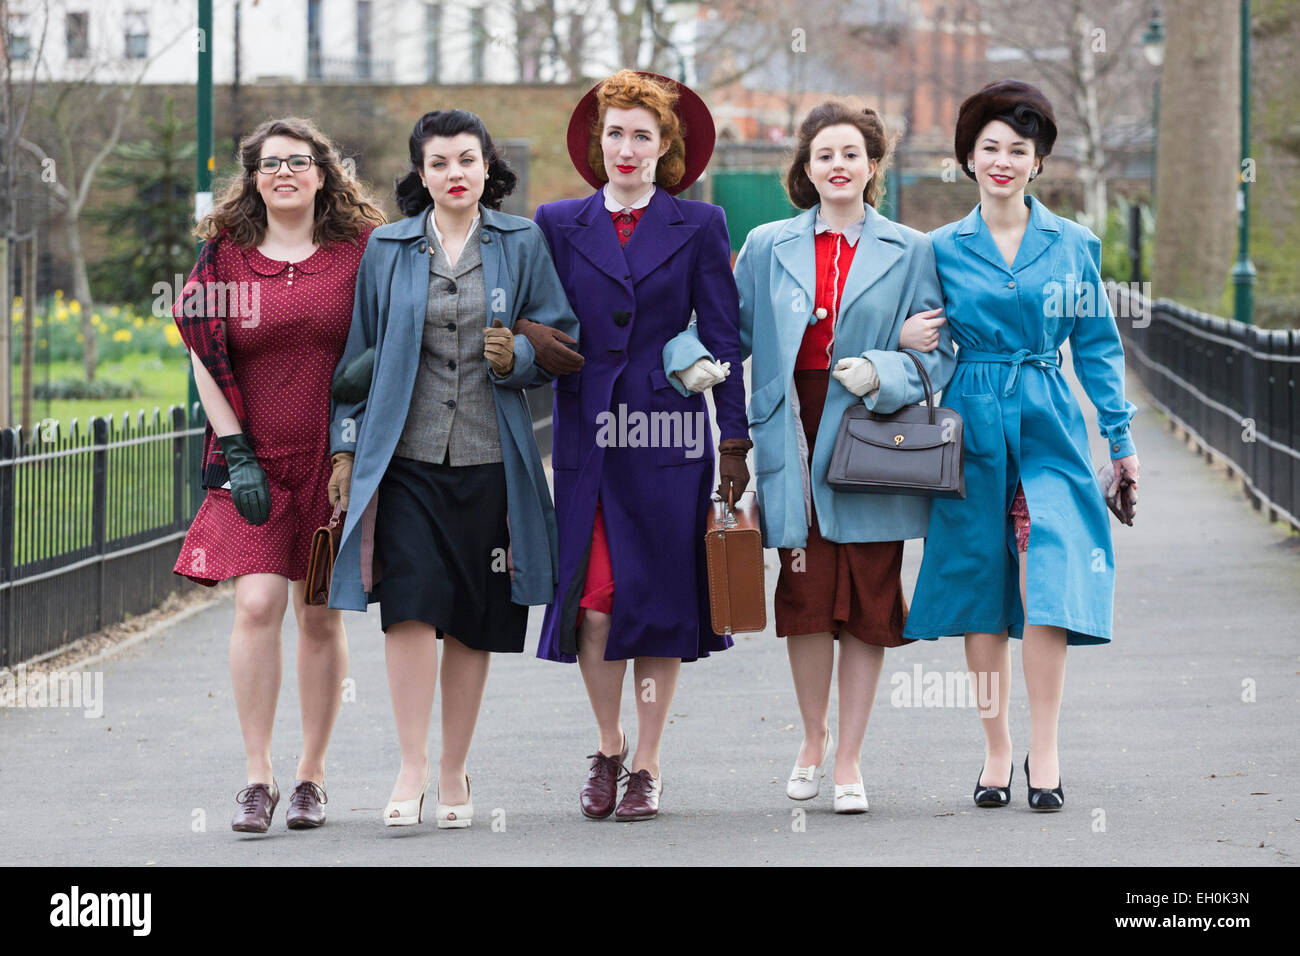 London Uk 3 March 2015 Photocall With Models Dressed In 1940s Stock Photo Royalty Free Image